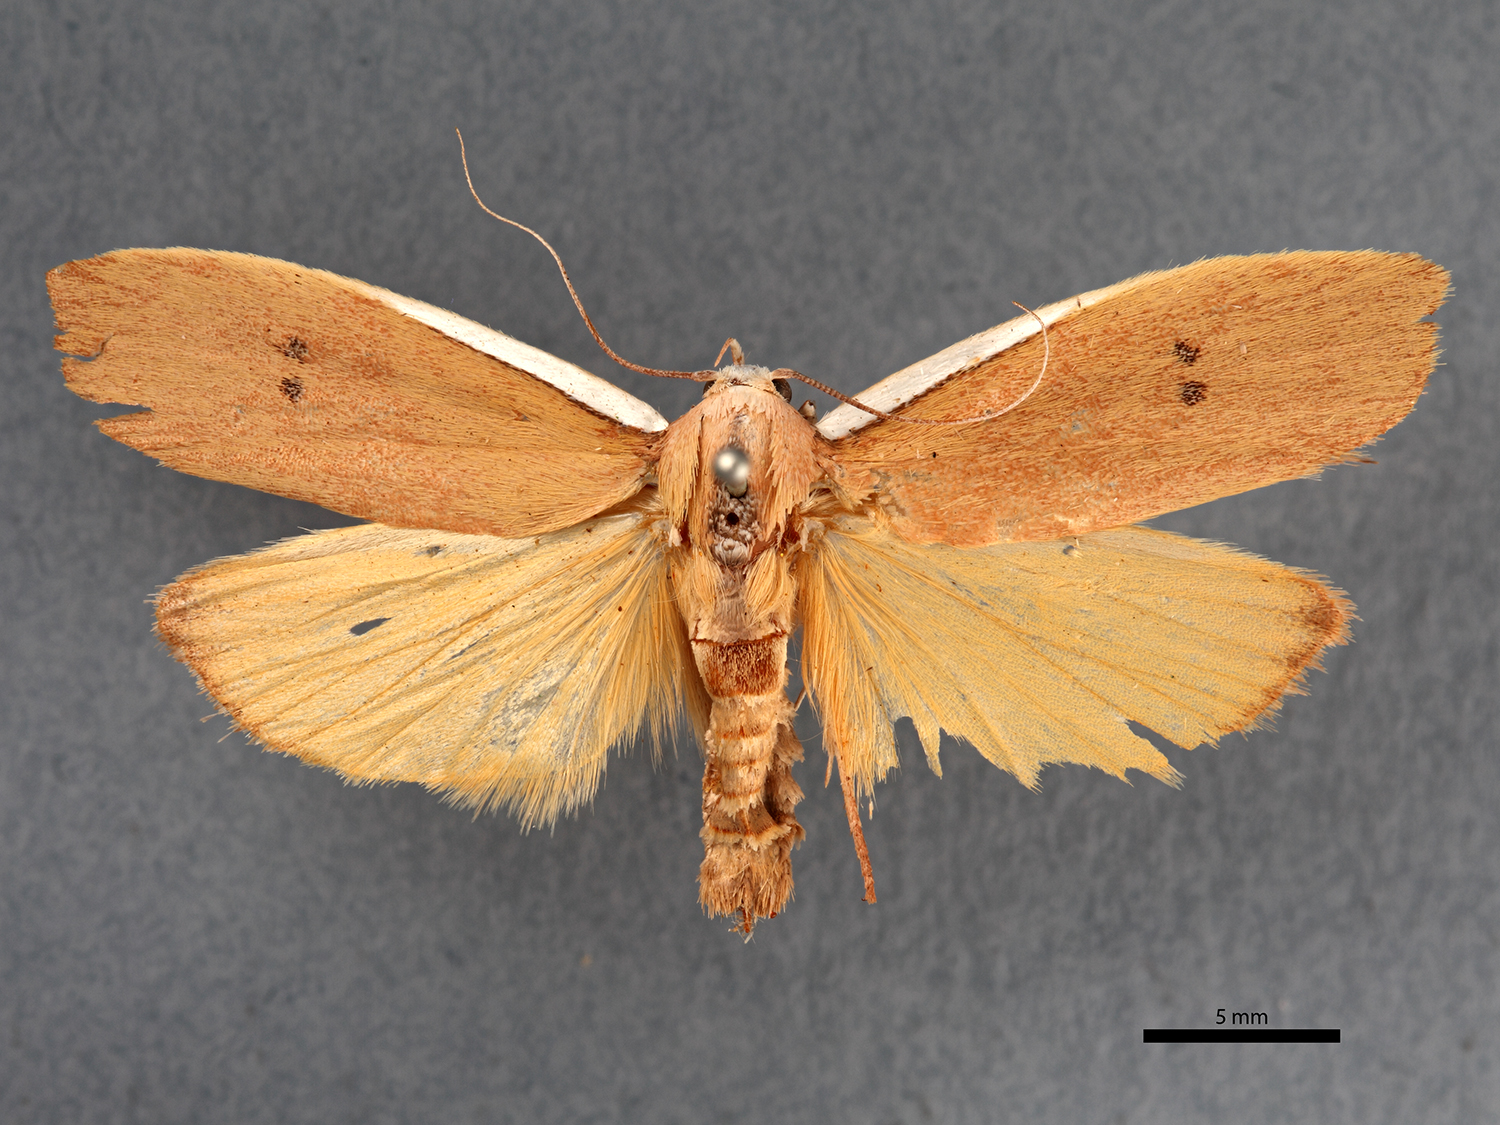 This type specimen of Cryptophasa citrinopa, was collected in Broken Hill in 1914. Natural History Museums care for type specimens to ensure their safety and perpetual availability for future researchers to refer to and review.